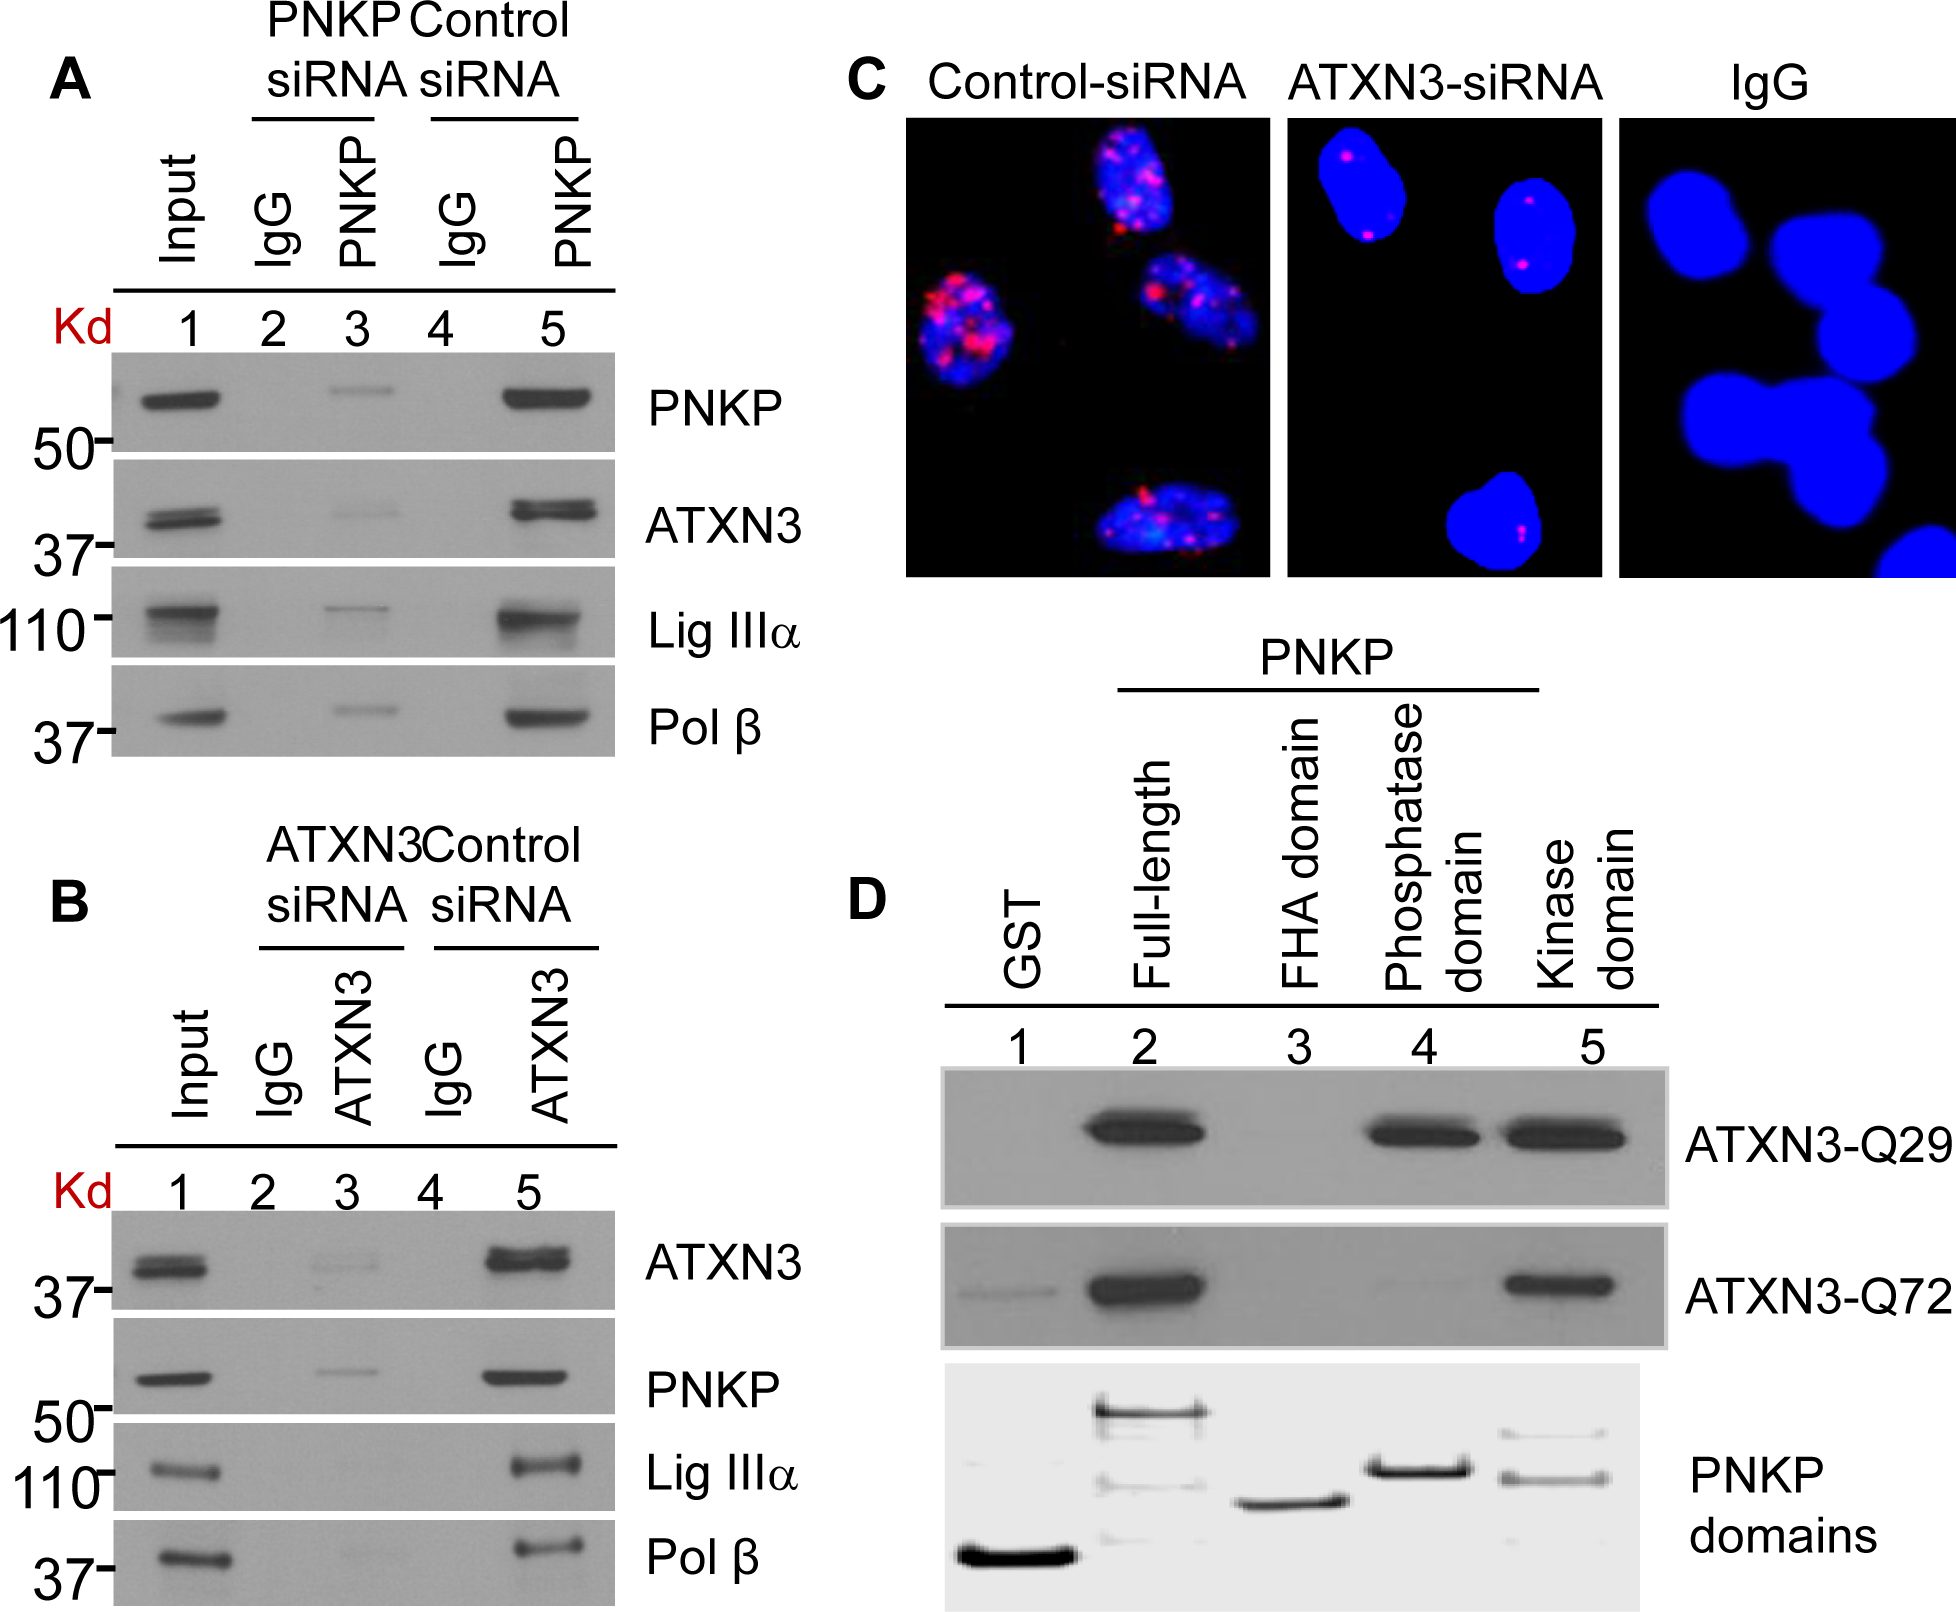 Characterization of the (A) PNKP and (B) ATXN3 immunocomplexes by Western blot analysis.